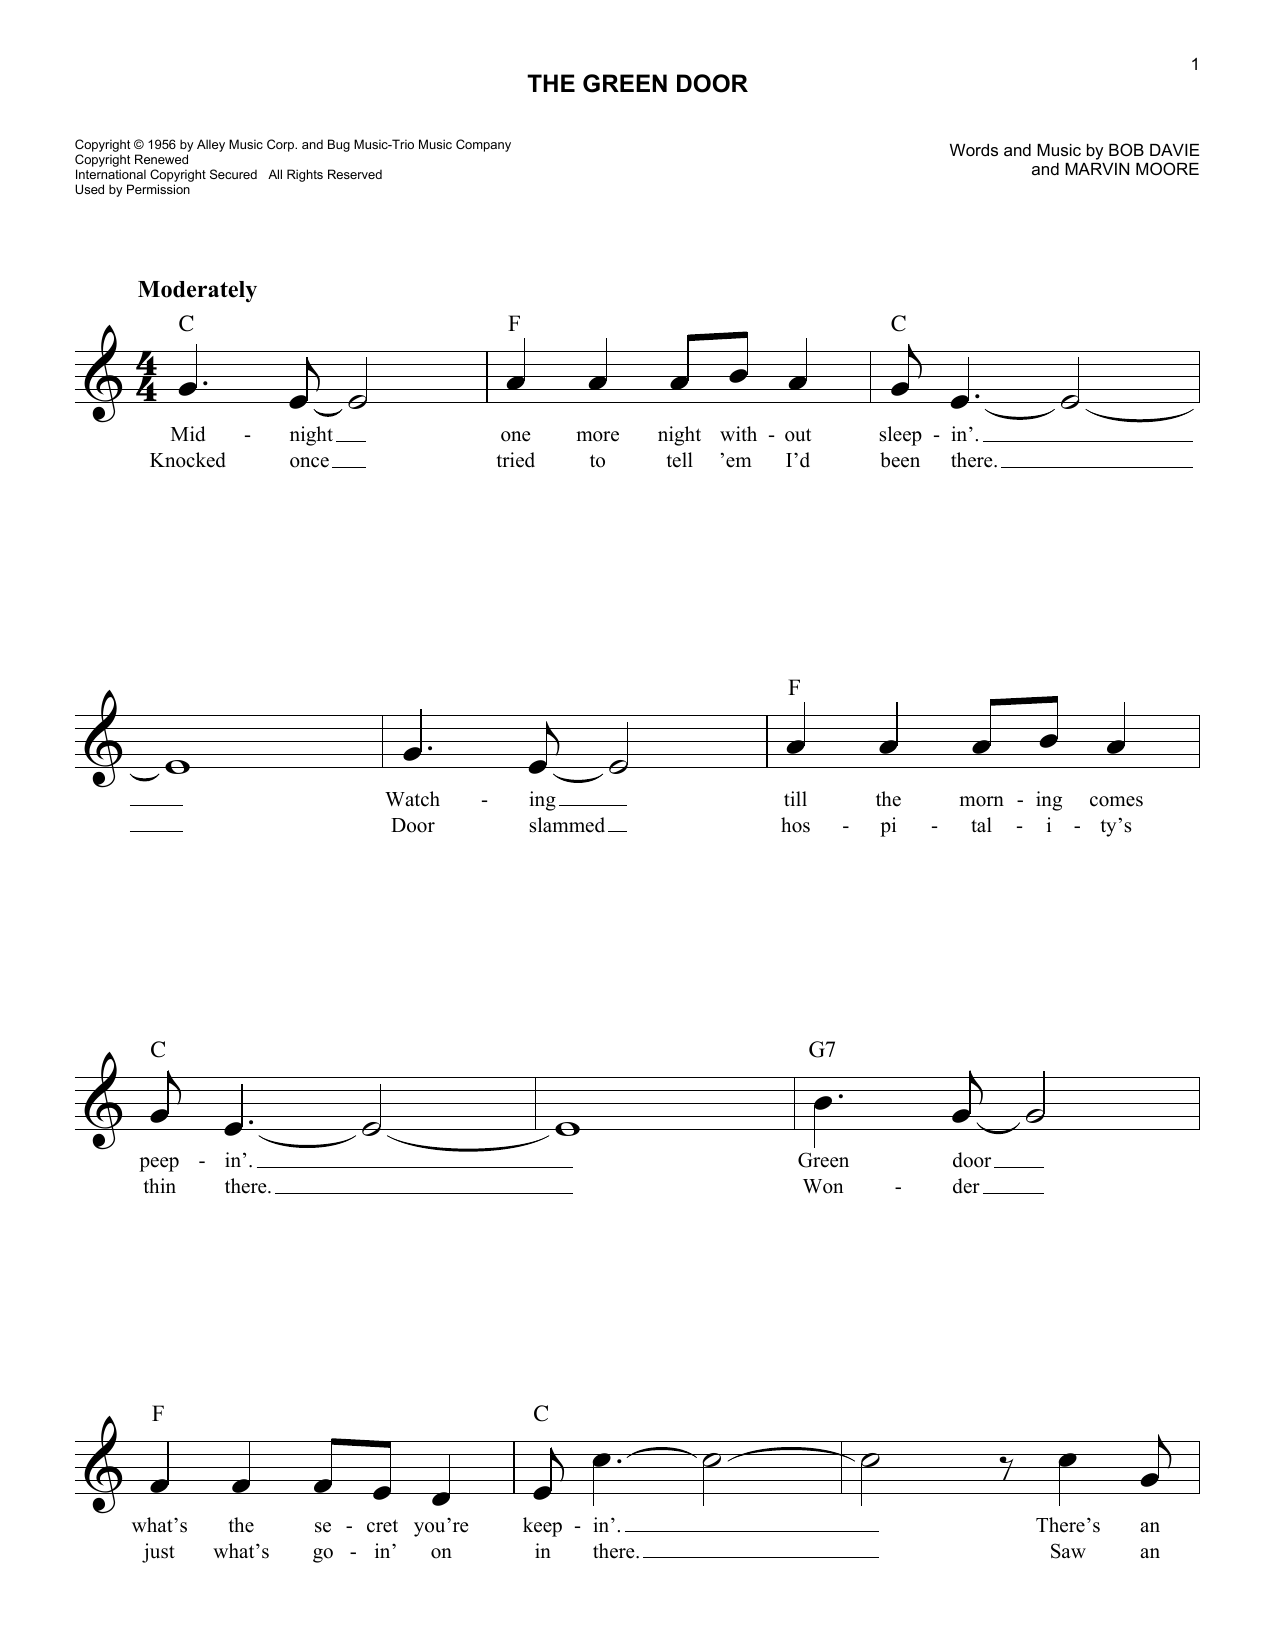 Guitar chords for kryptonite by 3 doors down choice image guitar spy doors chords song lyrics with guitar chords for green door jim lowe the green door hexwebz Choice Image